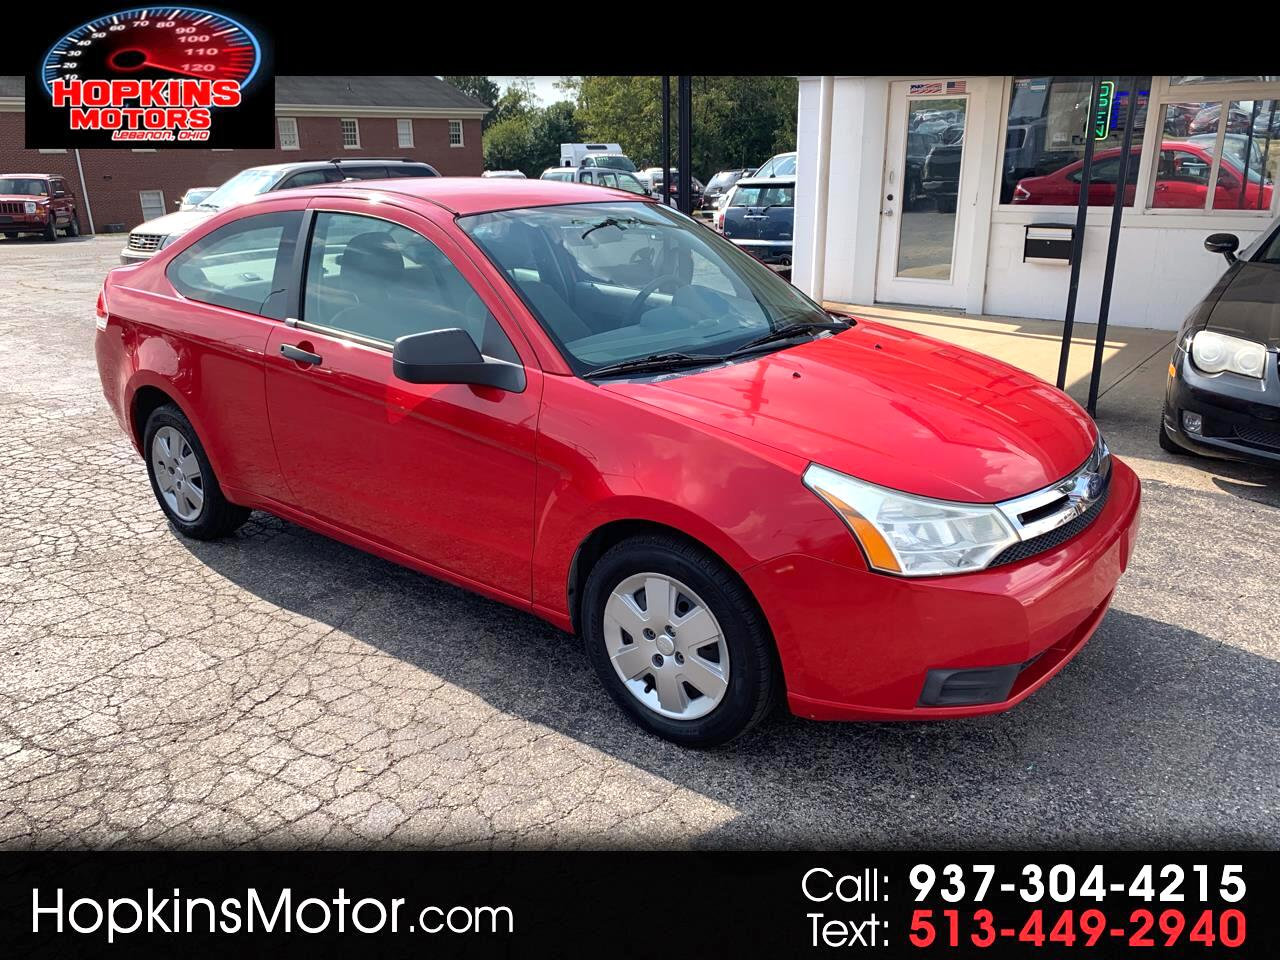 2008 Ford Focus 2dr Cpe S